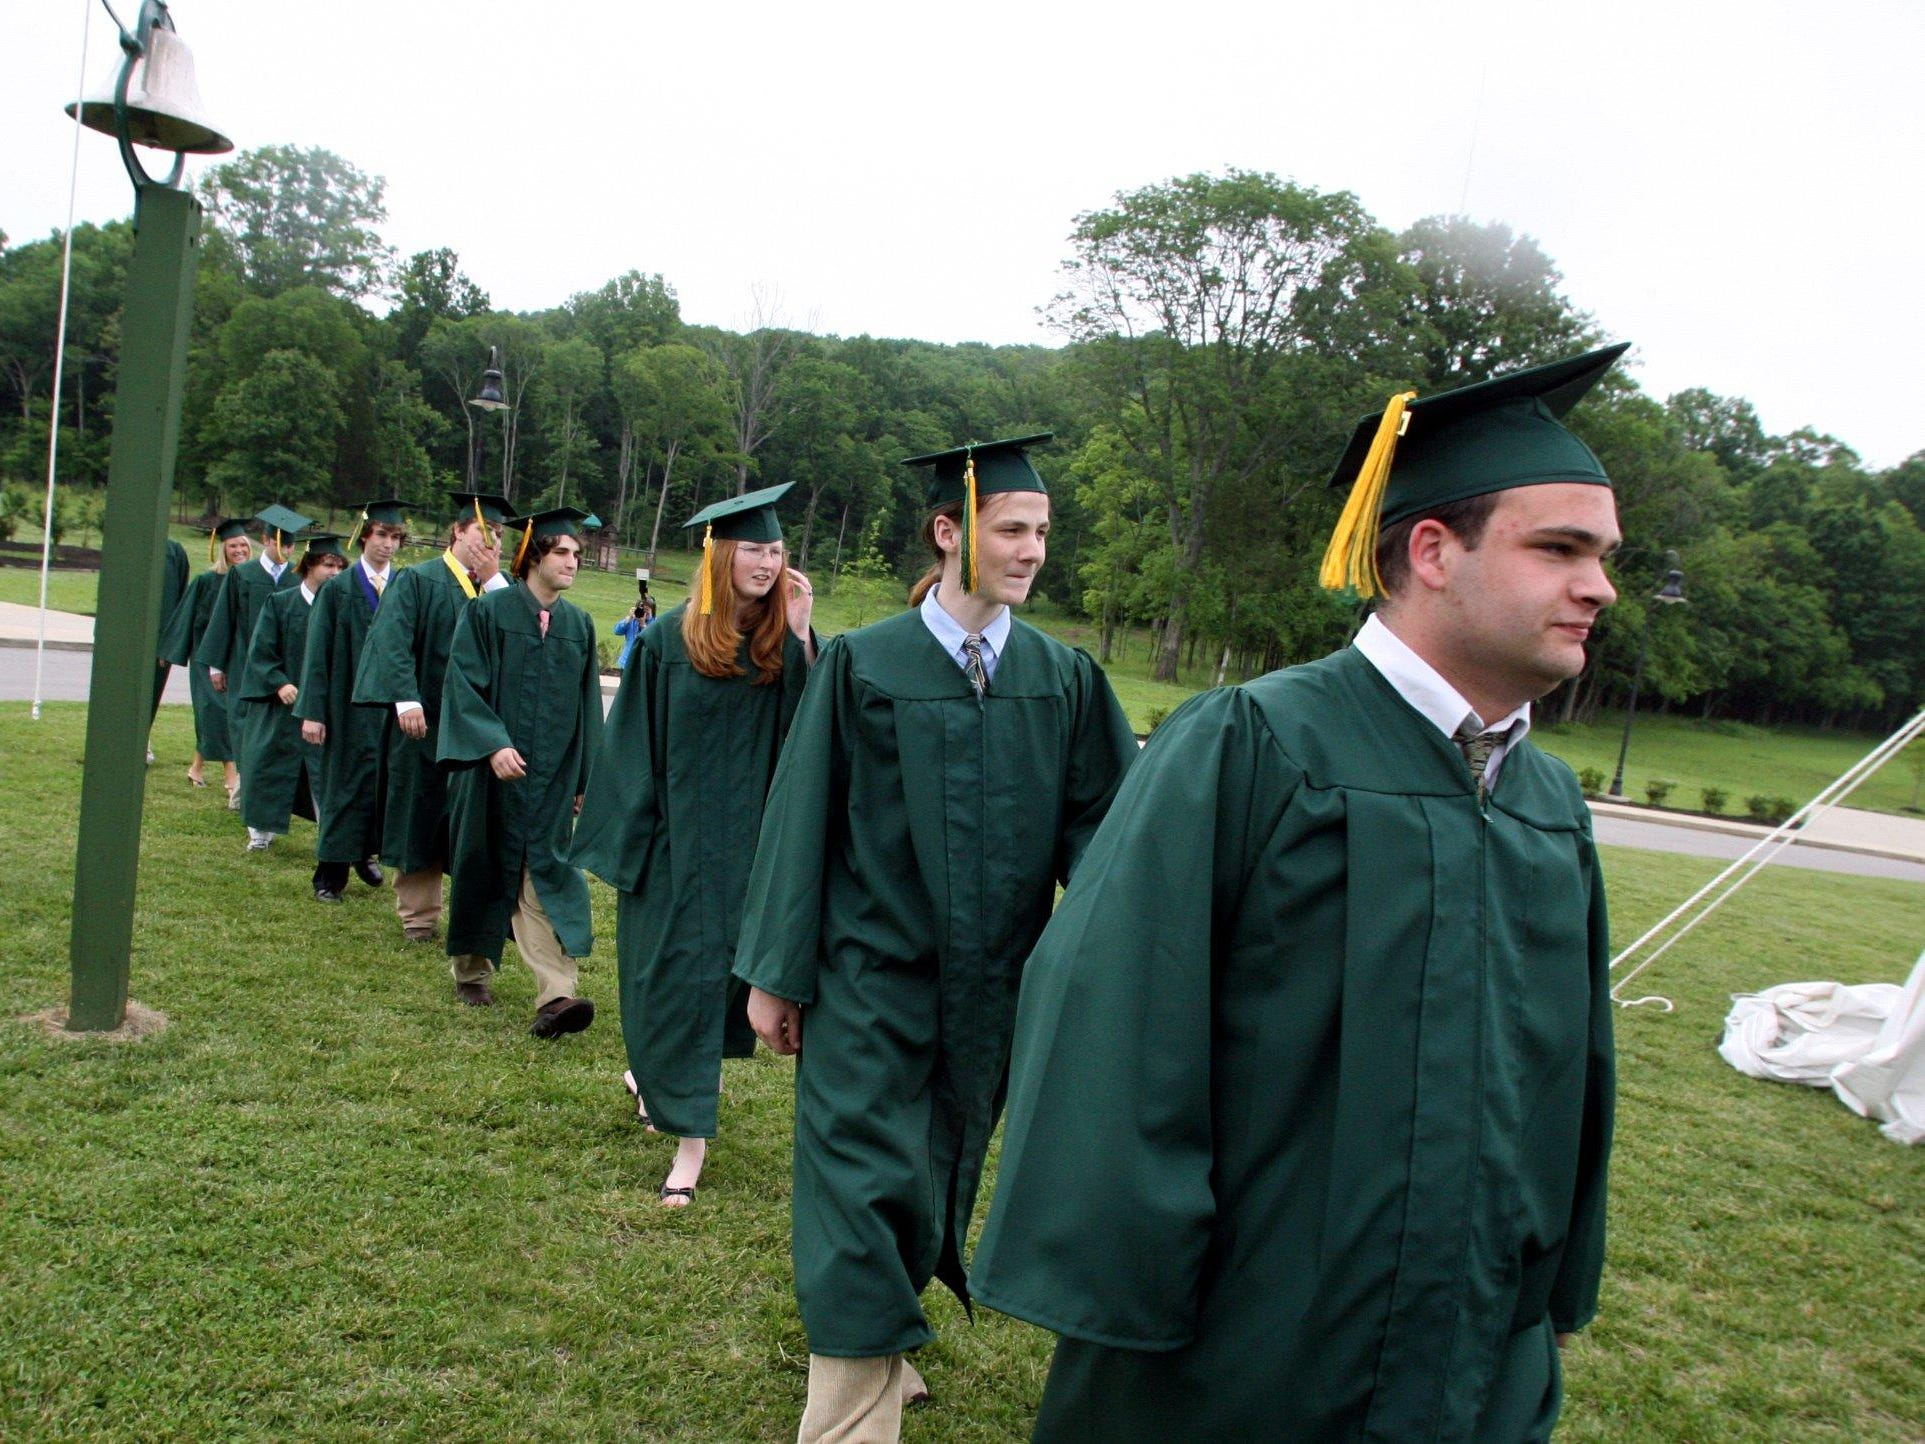 Cory Hulan, right, and the rest of the Currey Ingram Academy senior class walk to the tent where graduation is held in 2006.